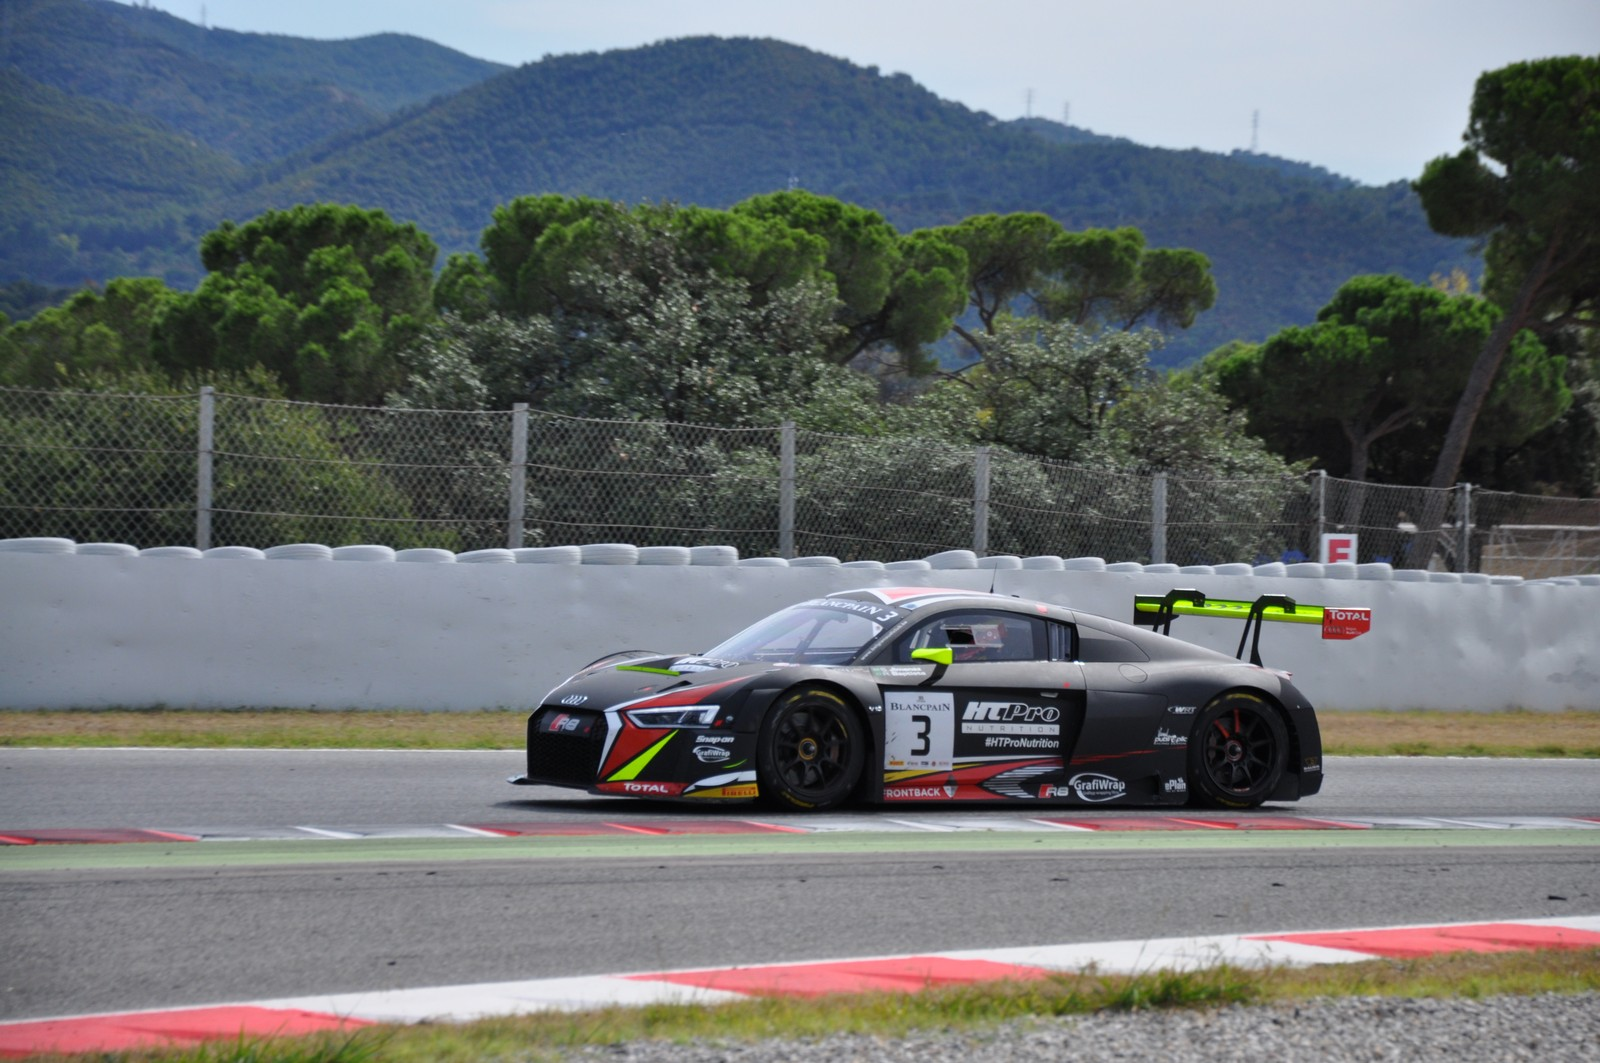 Curbstone Track Events Round 16 & 17 at Circuit de Barcelona